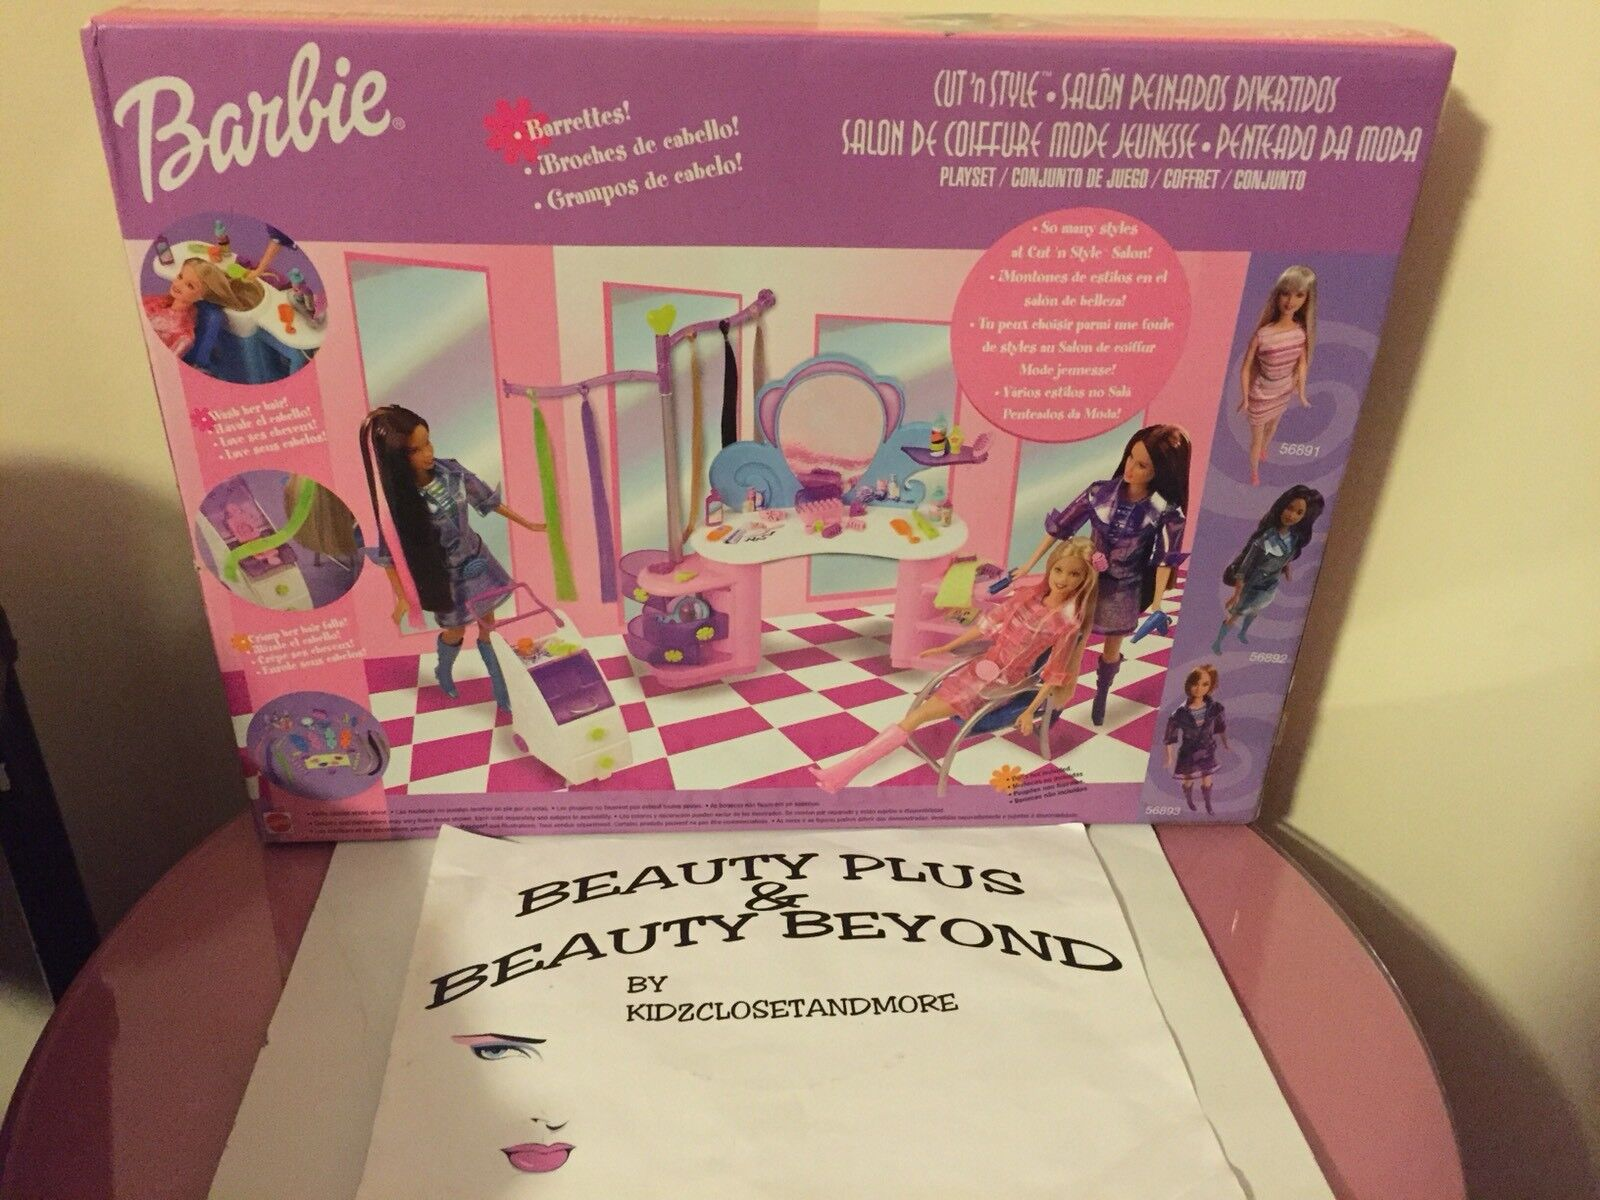 Juego Barbie Salon De Belleza Mattel 2002 Barbie Cut N Style Beauty Salon Hard To Find